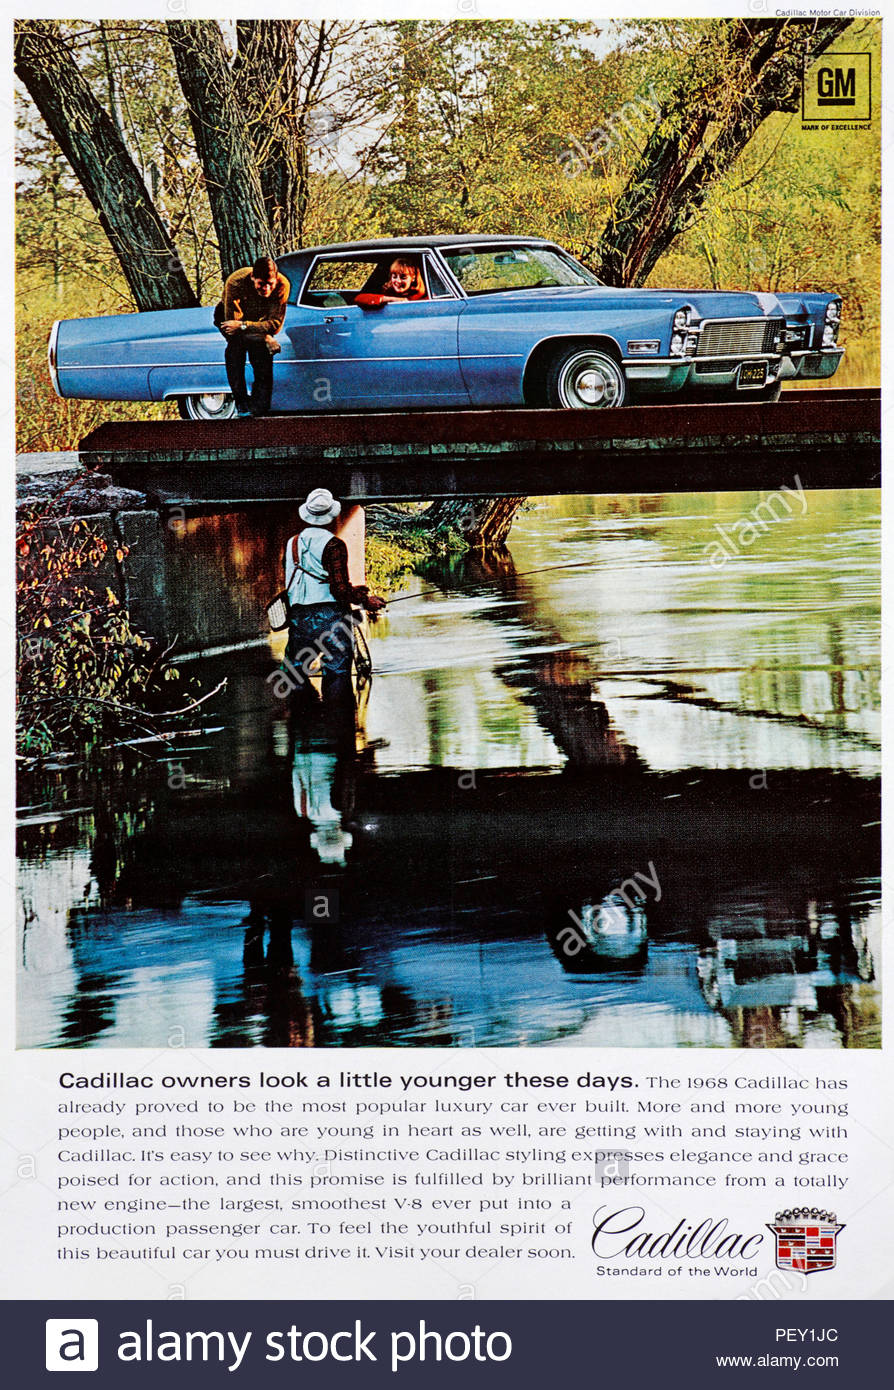 Vintage advertising for the Cadillac Car 1968 - Stock Image